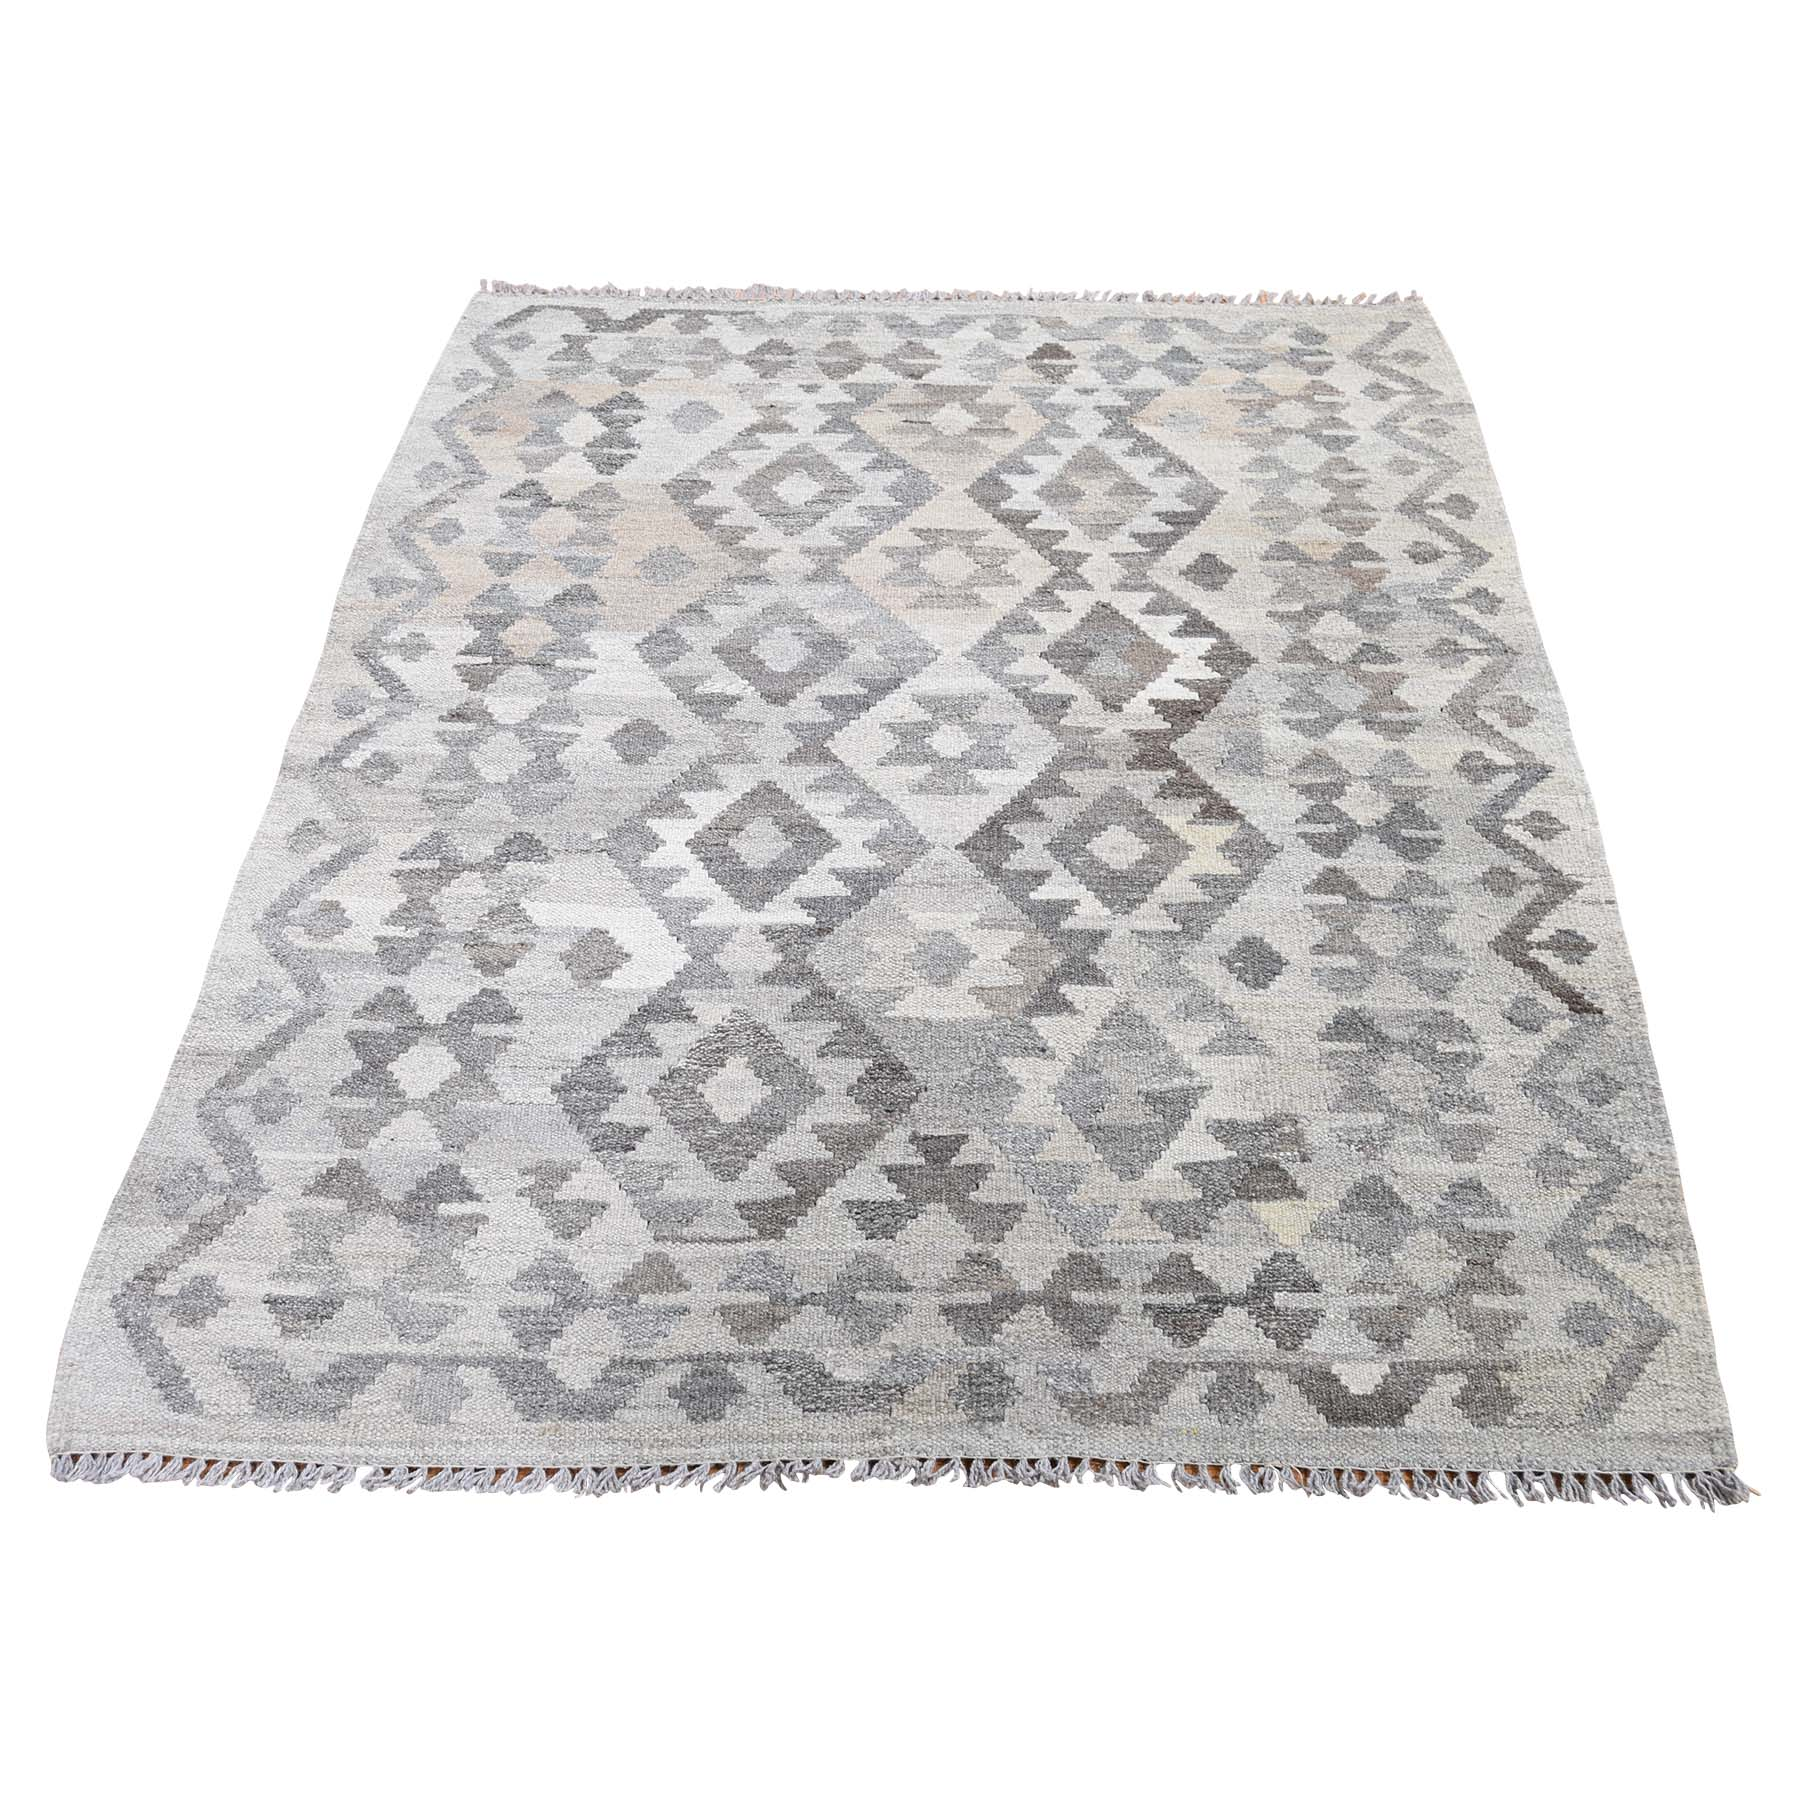 """3'6""""X4'10"""" Undyed Natural Wool Afghan Kilim Reversible Hand Woven Oriental Rug moadeb0b"""